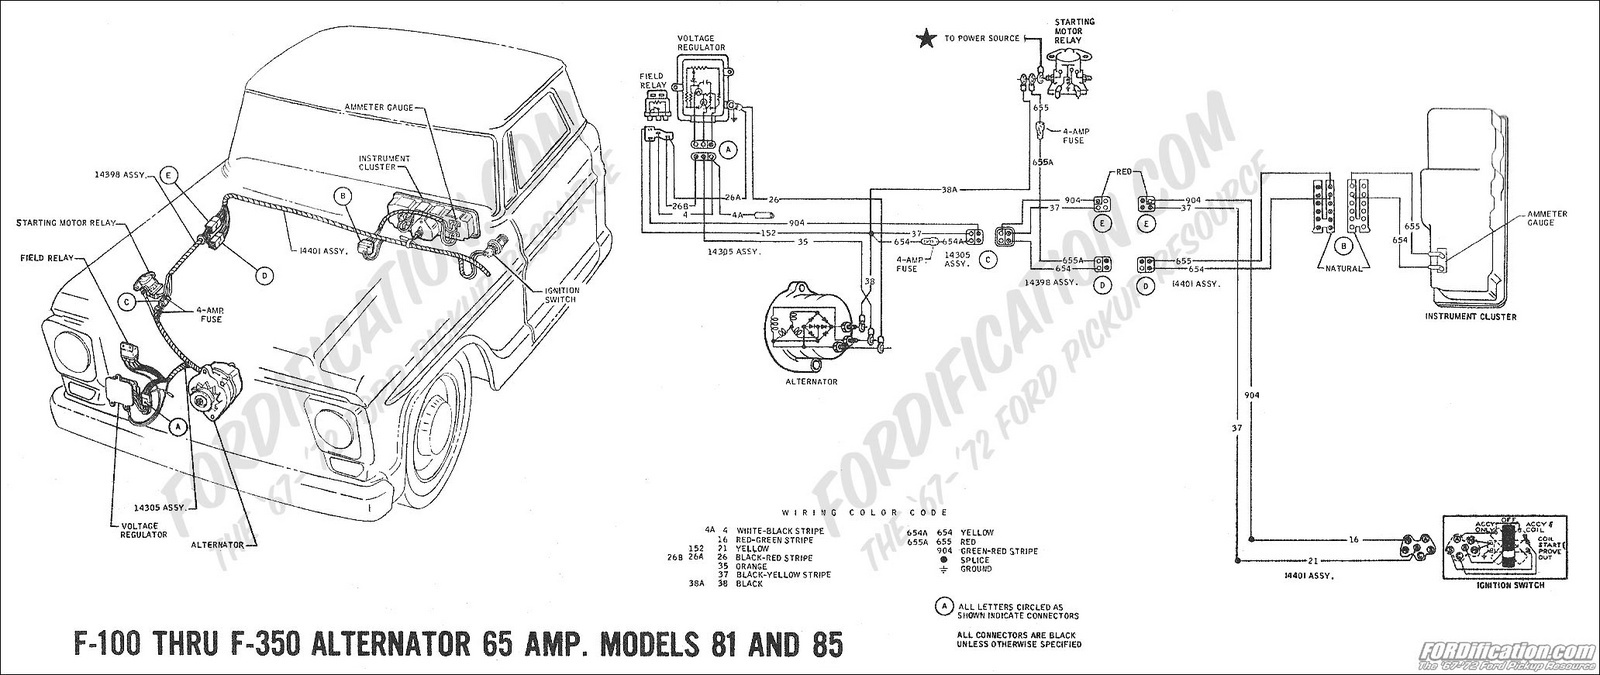 1977 Ford F 250 Alternator Wiring | Wiring Diagram Ford External Regulator Wiring Diagram on ford external regulator to a cdc, ford voltage regulator, ezgo golf cart wiring diagram, ford electrical wiring diagrams, f150 voltage regulator diagram, 200 lincoln welder wiring diagram, ford alternator diagram, simple 12v voltage controller diagram, 12 volt wiring diagram, ford f100 chassis, basic harley wiring diagram, 1977 dodge truck wiring diagram, ford alternator with external regulator, charging system wiring diagram, ford alternator regulator wiring, ford alternator wiring hook up,